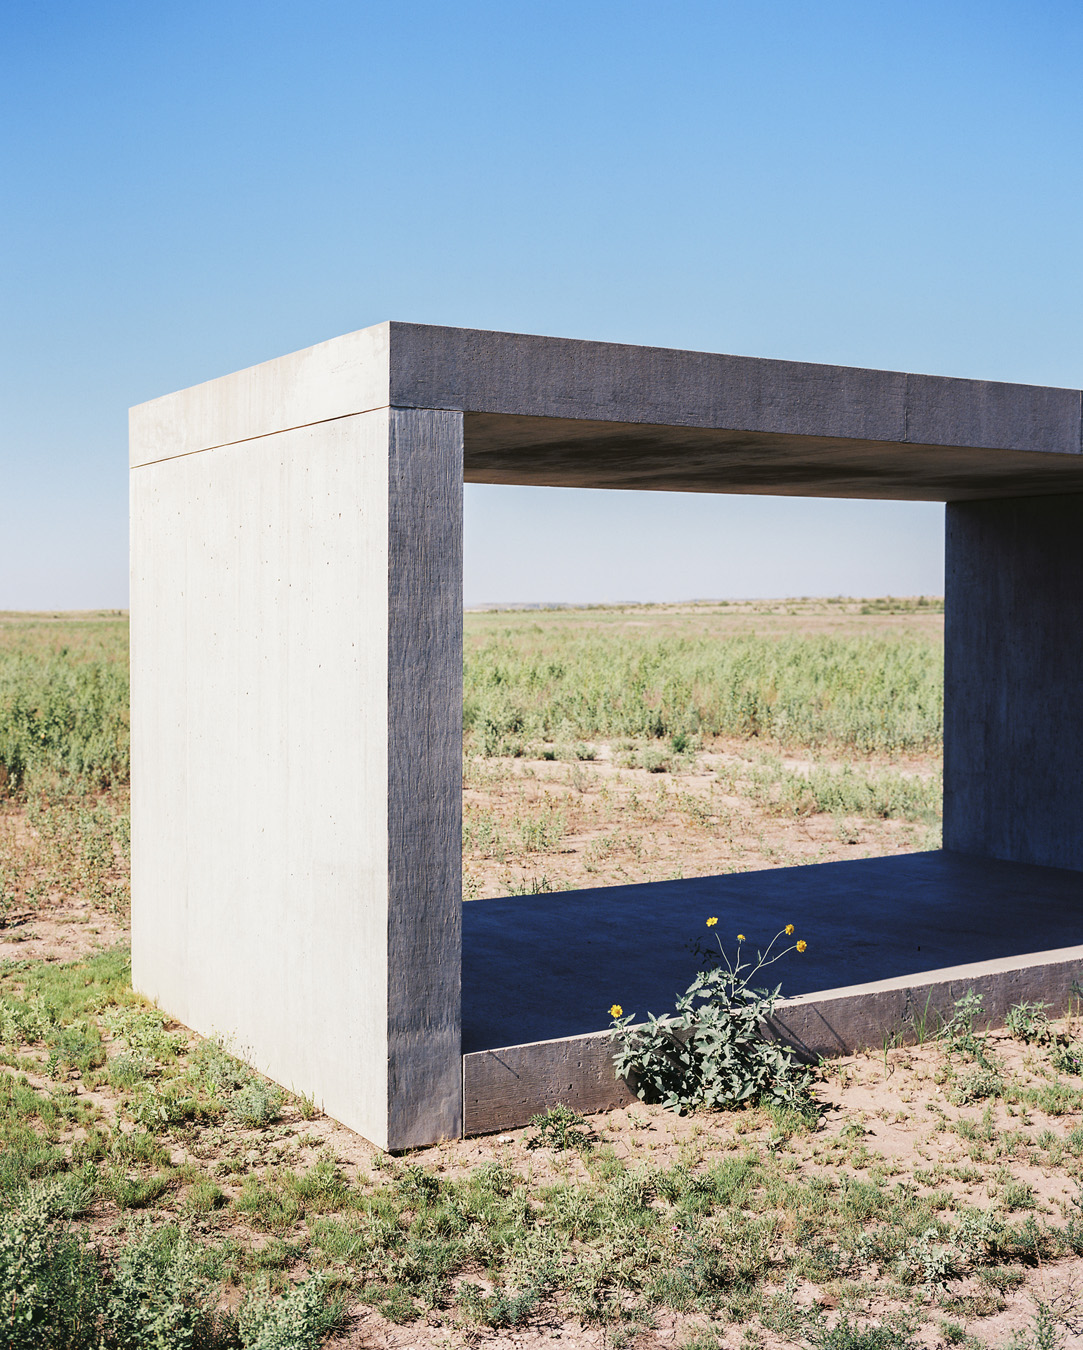 Matthew-johnson-marfa-2206